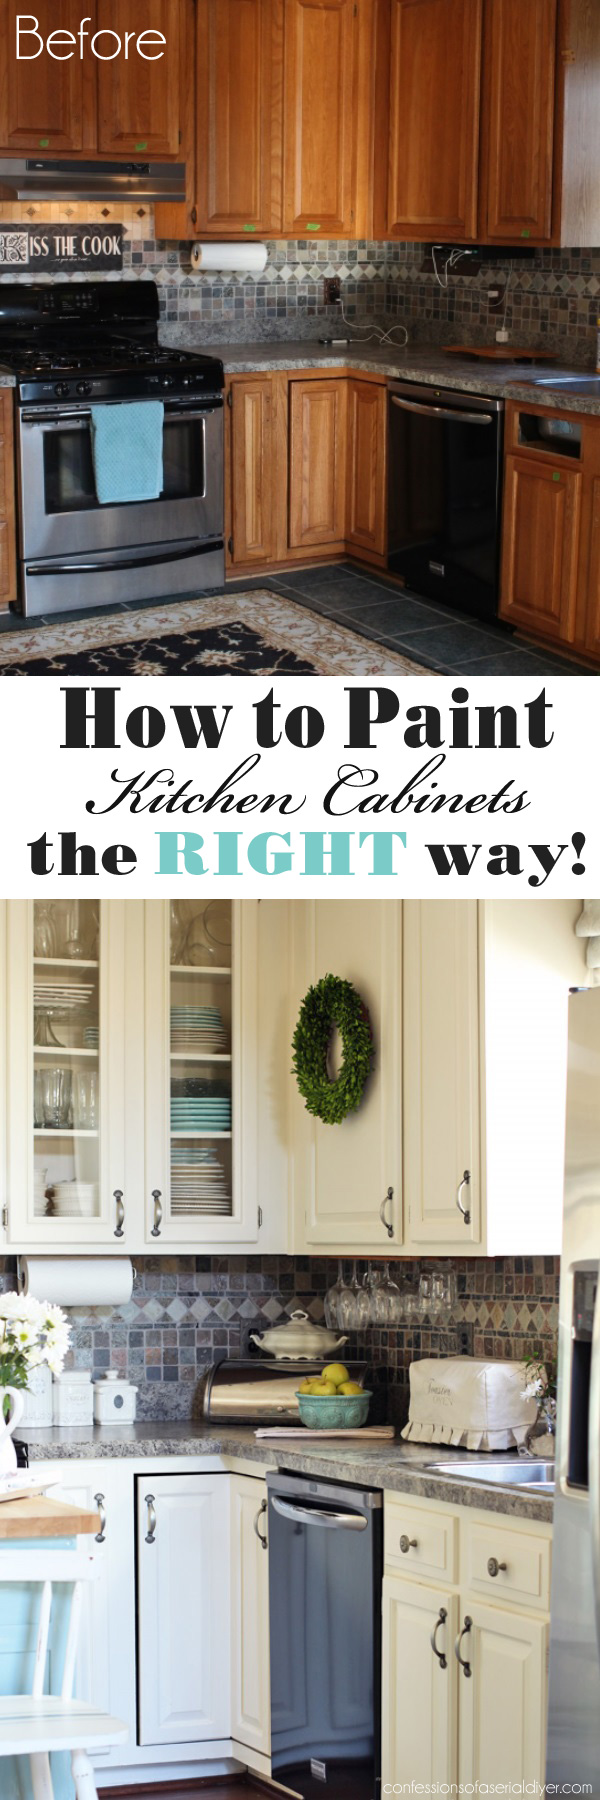 how to paint kitchen cabinets a step by step guide painting kitchen cabinets How to Paint Kitchen Cabinets the RIGHT way from Confessions of a Serial Do it